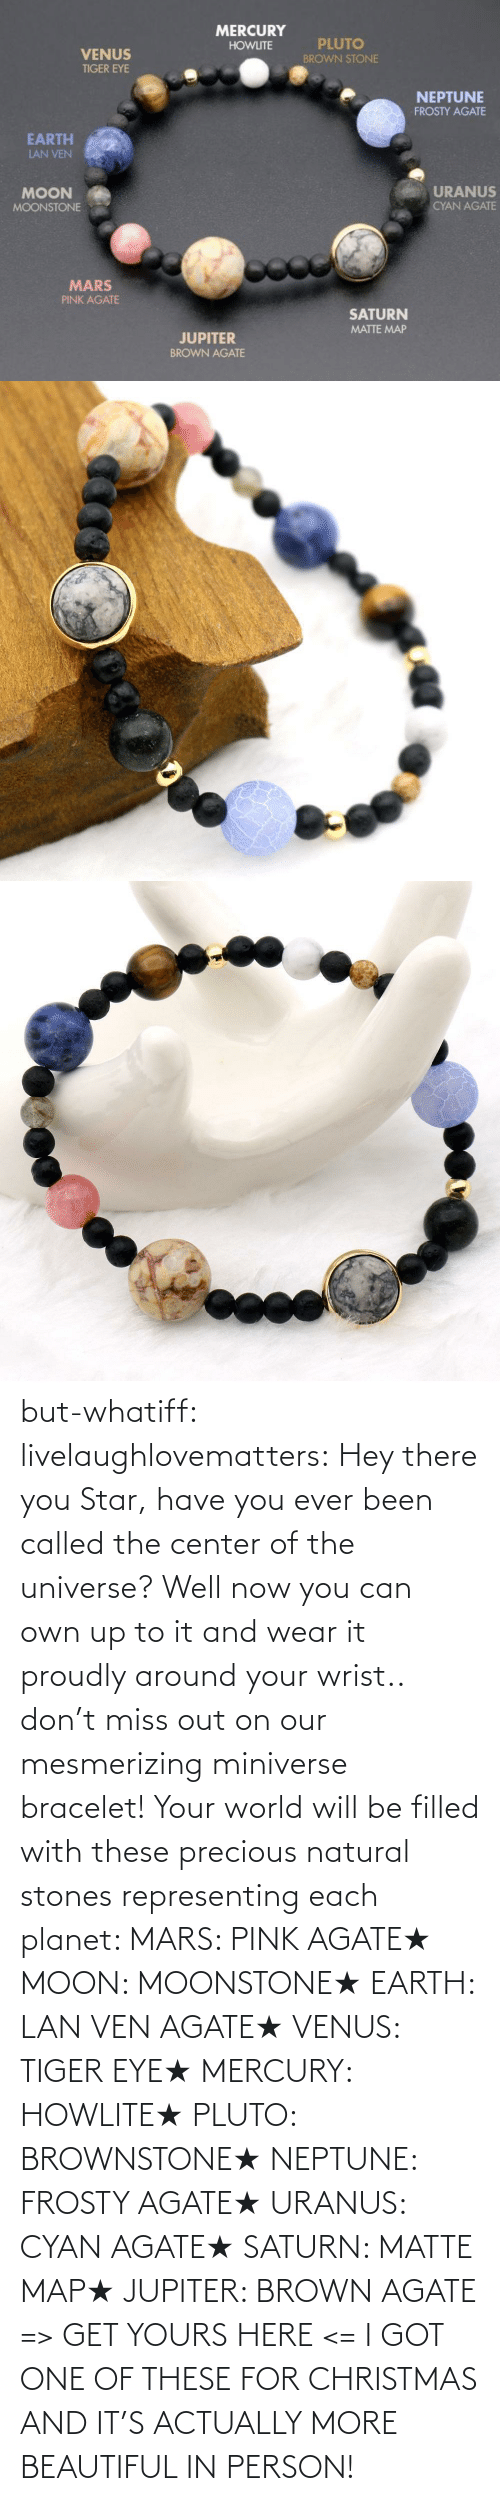 amp: but-whatiff:  livelaughlovematters:  Hey there you Star, have you ever been called the center of the universe? Well now you can own up to it and wear it proudly around your wrist.. don't miss out on our mesmerizing miniverse bracelet! Your world will be filled with these precious natural stones representing each planet:  MARS: PINK AGATE★ MOON: MOONSTONE★ EARTH: LAN VEN AGATE★ VENUS: TIGER EYE★ MERCURY: HOWLITE★ PLUTO: BROWNSTONE★ NEPTUNE: FROSTY AGATE★ URANUS: CYAN AGATE★ SATURN: MATTE MAP★ JUPITER: BROWN AGATE => GET YOURS HERE <=  I GOT ONE OF THESE FOR CHRISTMAS AND IT'S ACTUALLY MORE BEAUTIFUL IN PERSON!